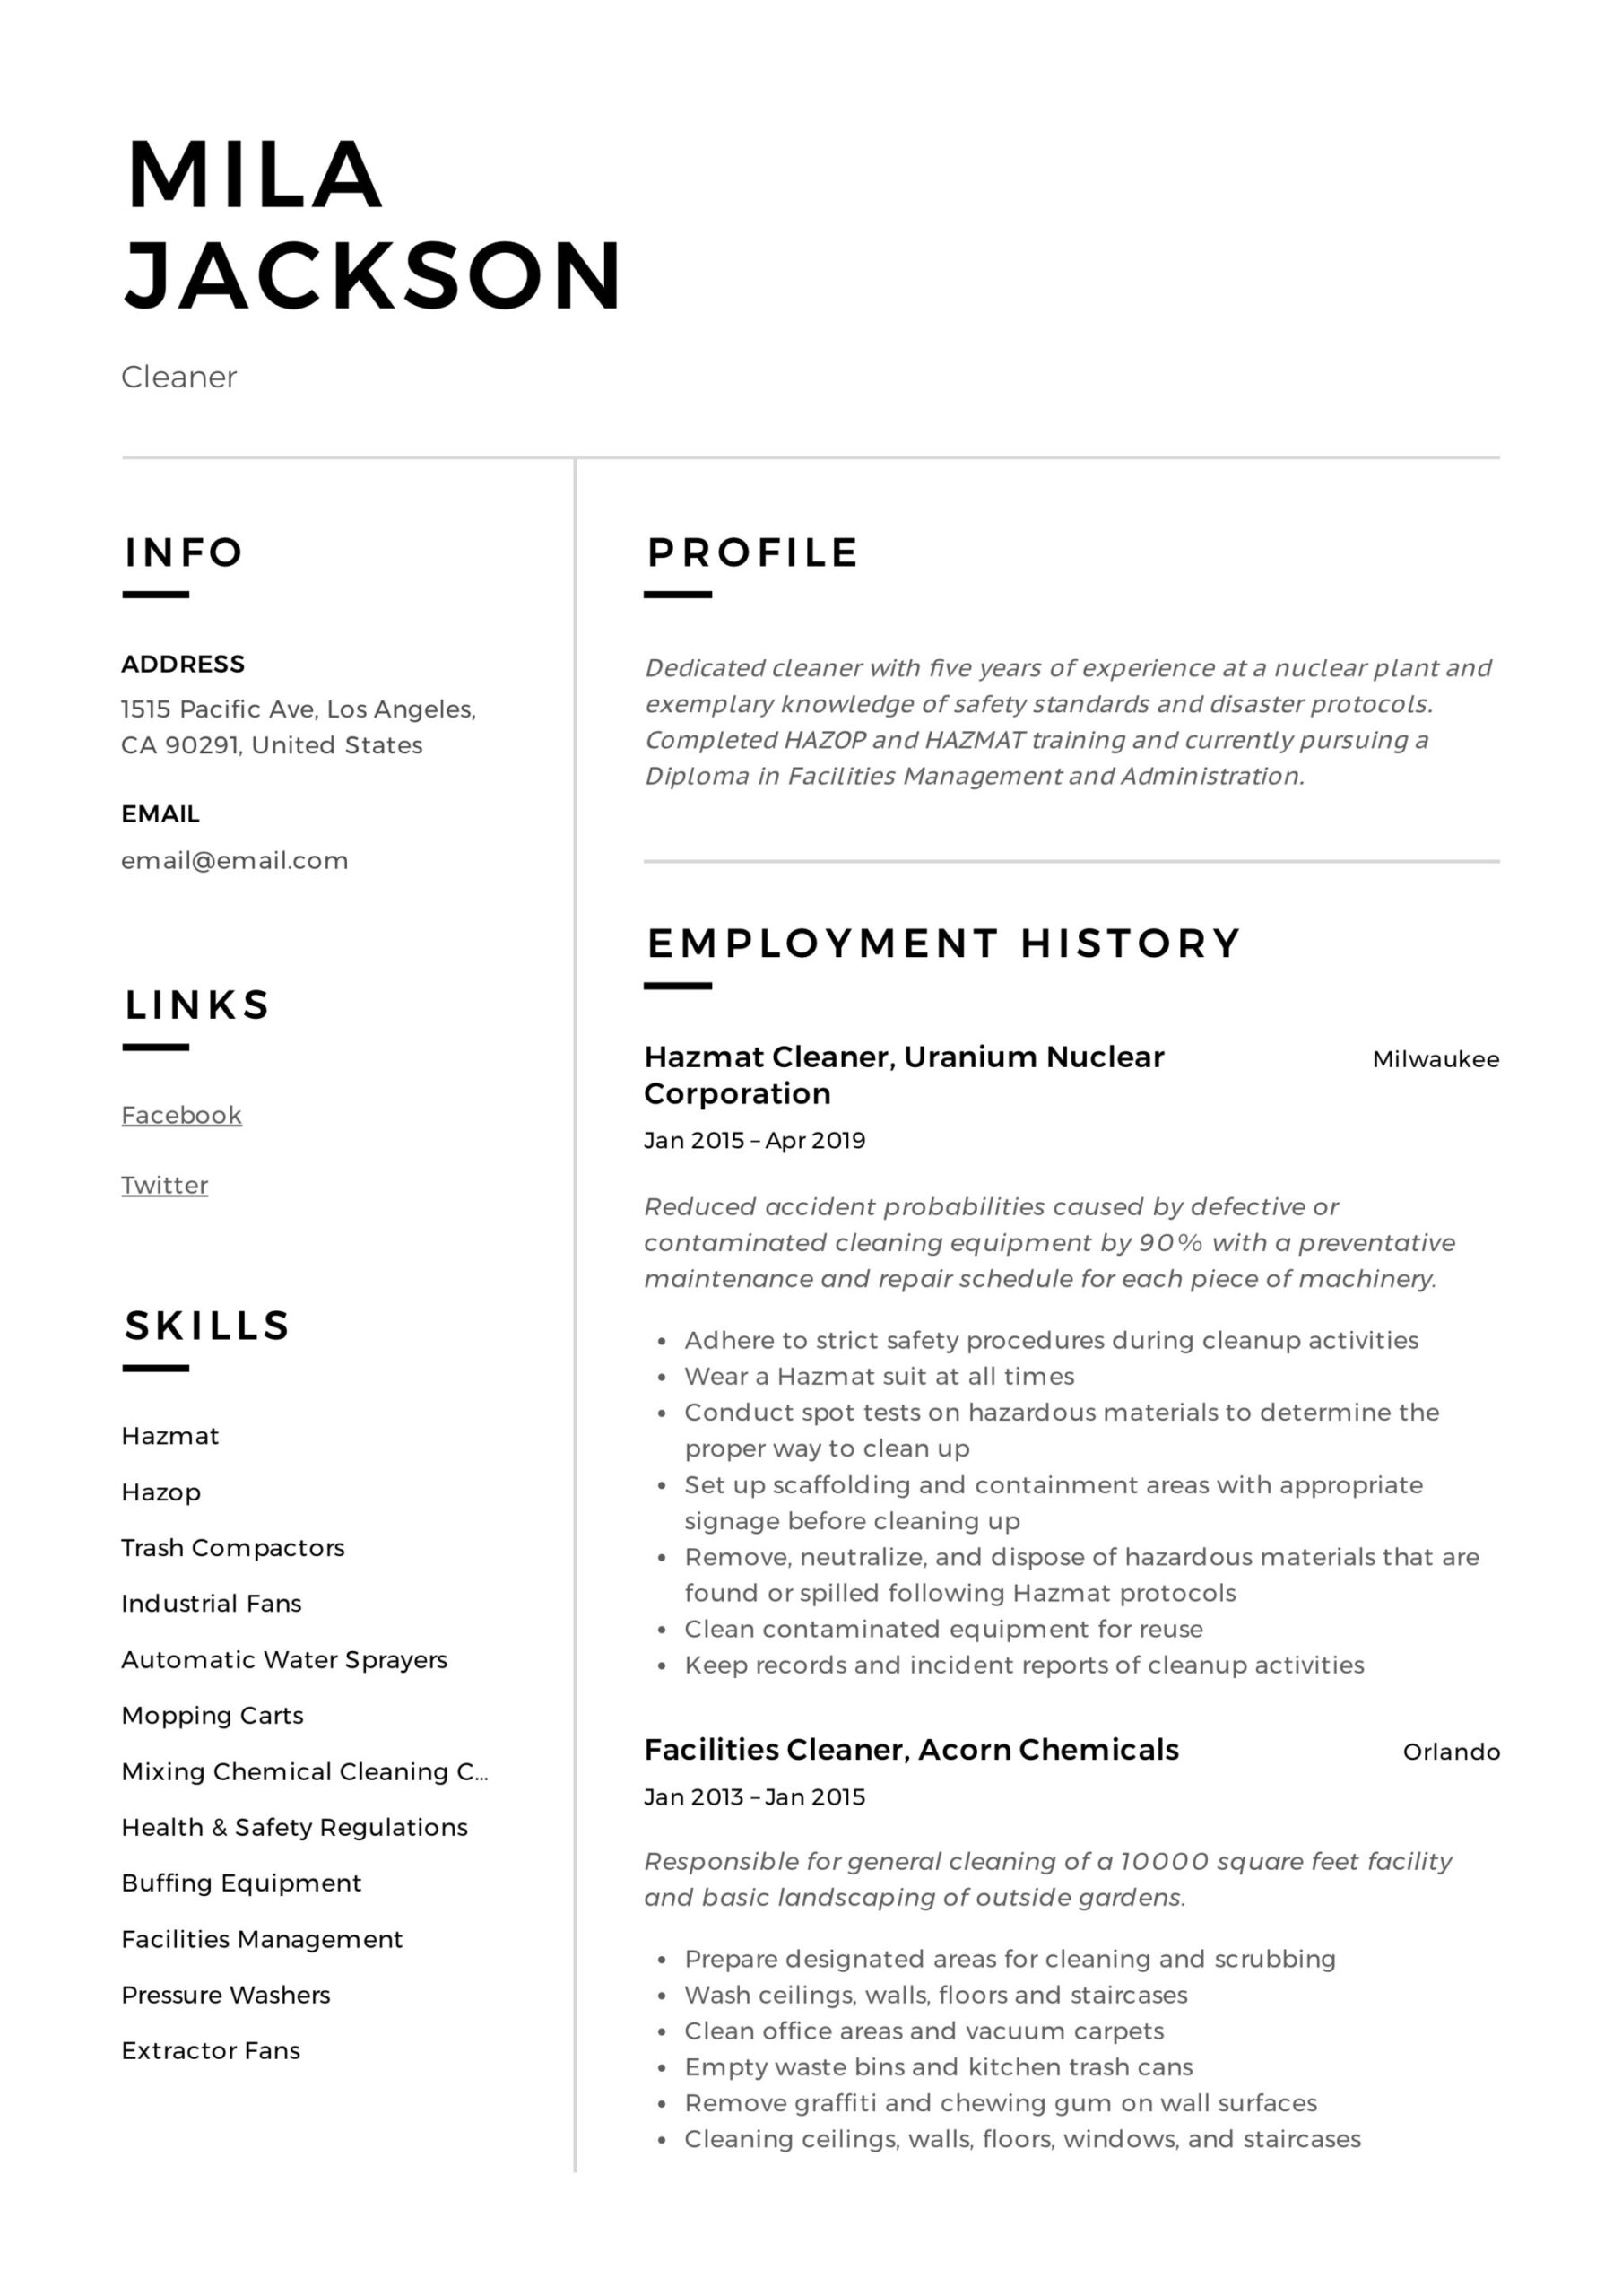 cleaner resume writing guide templates pdf samples for cleaning position mila physical Resume Resume Samples For Cleaning Position